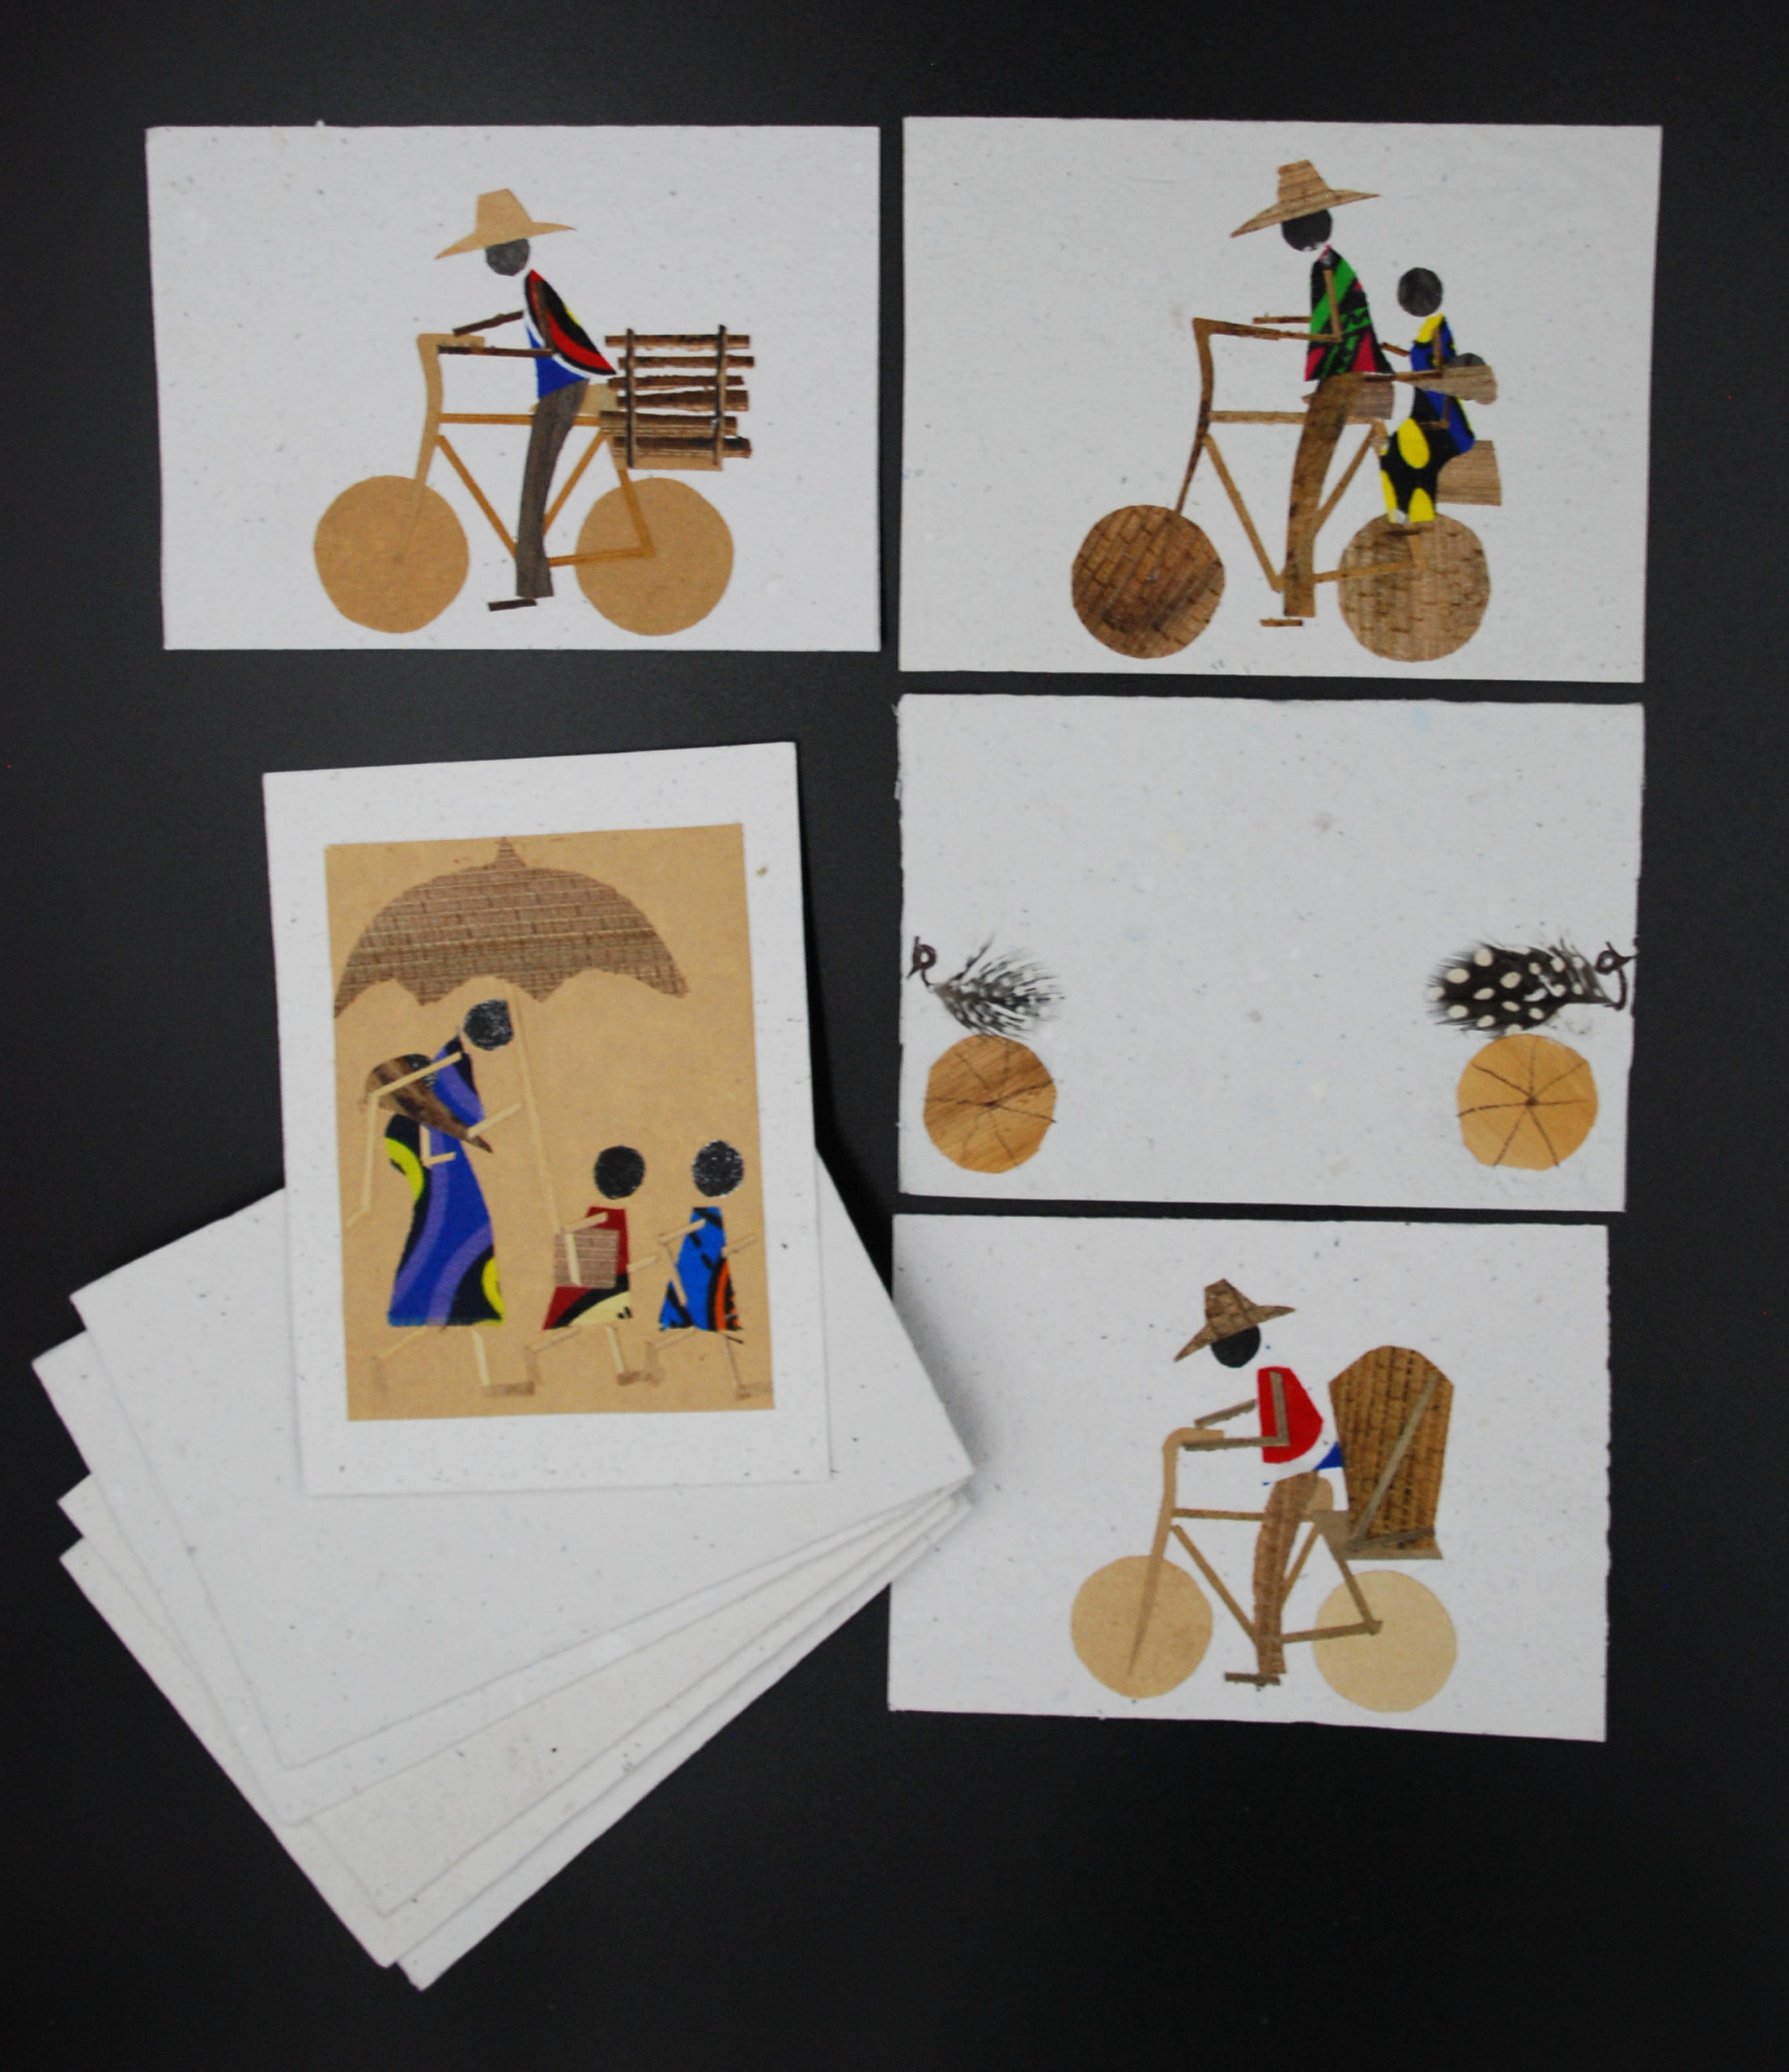 Recycled Banana Paper Greetings Cards - Cycle Of Good